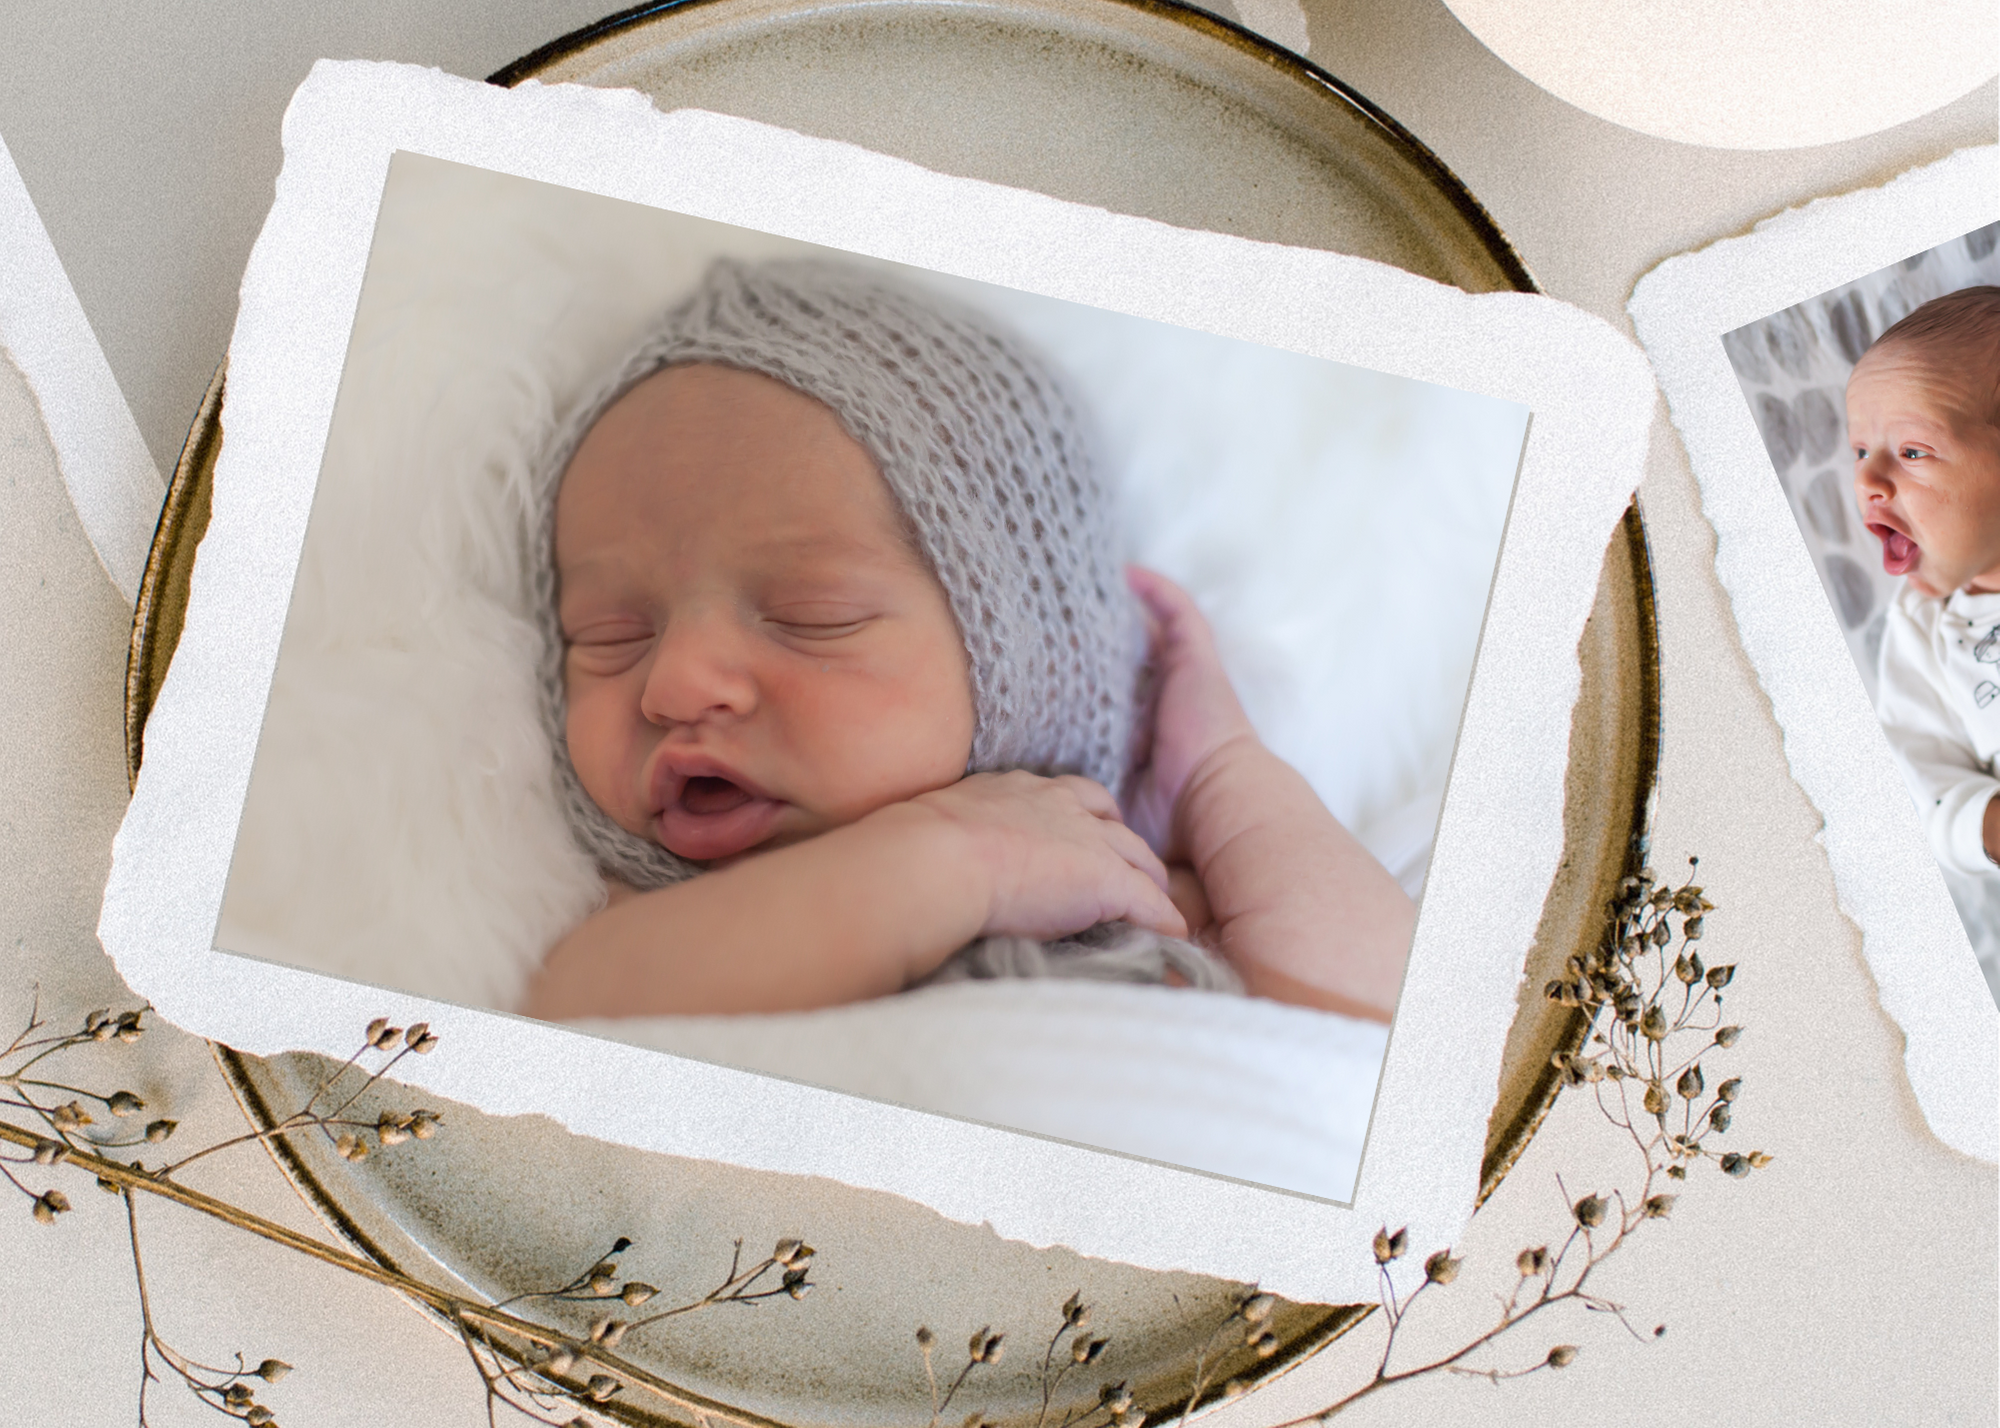 framed photos of newborn baby boy on a table, photographed by kristal bean photography